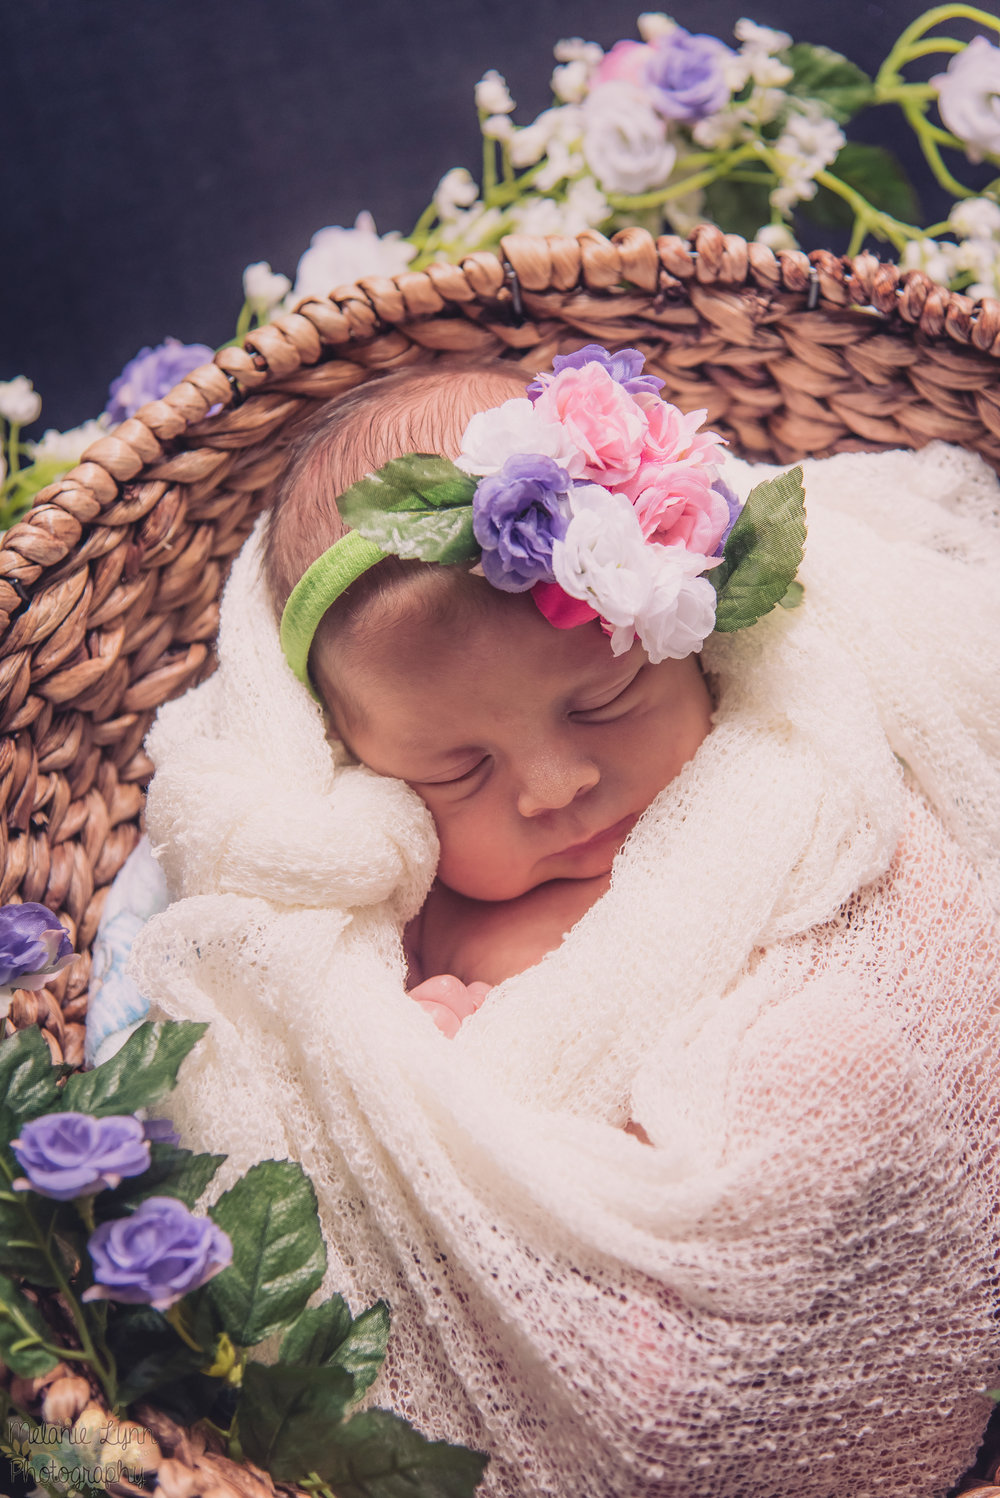 flowers baby in basket.JPG